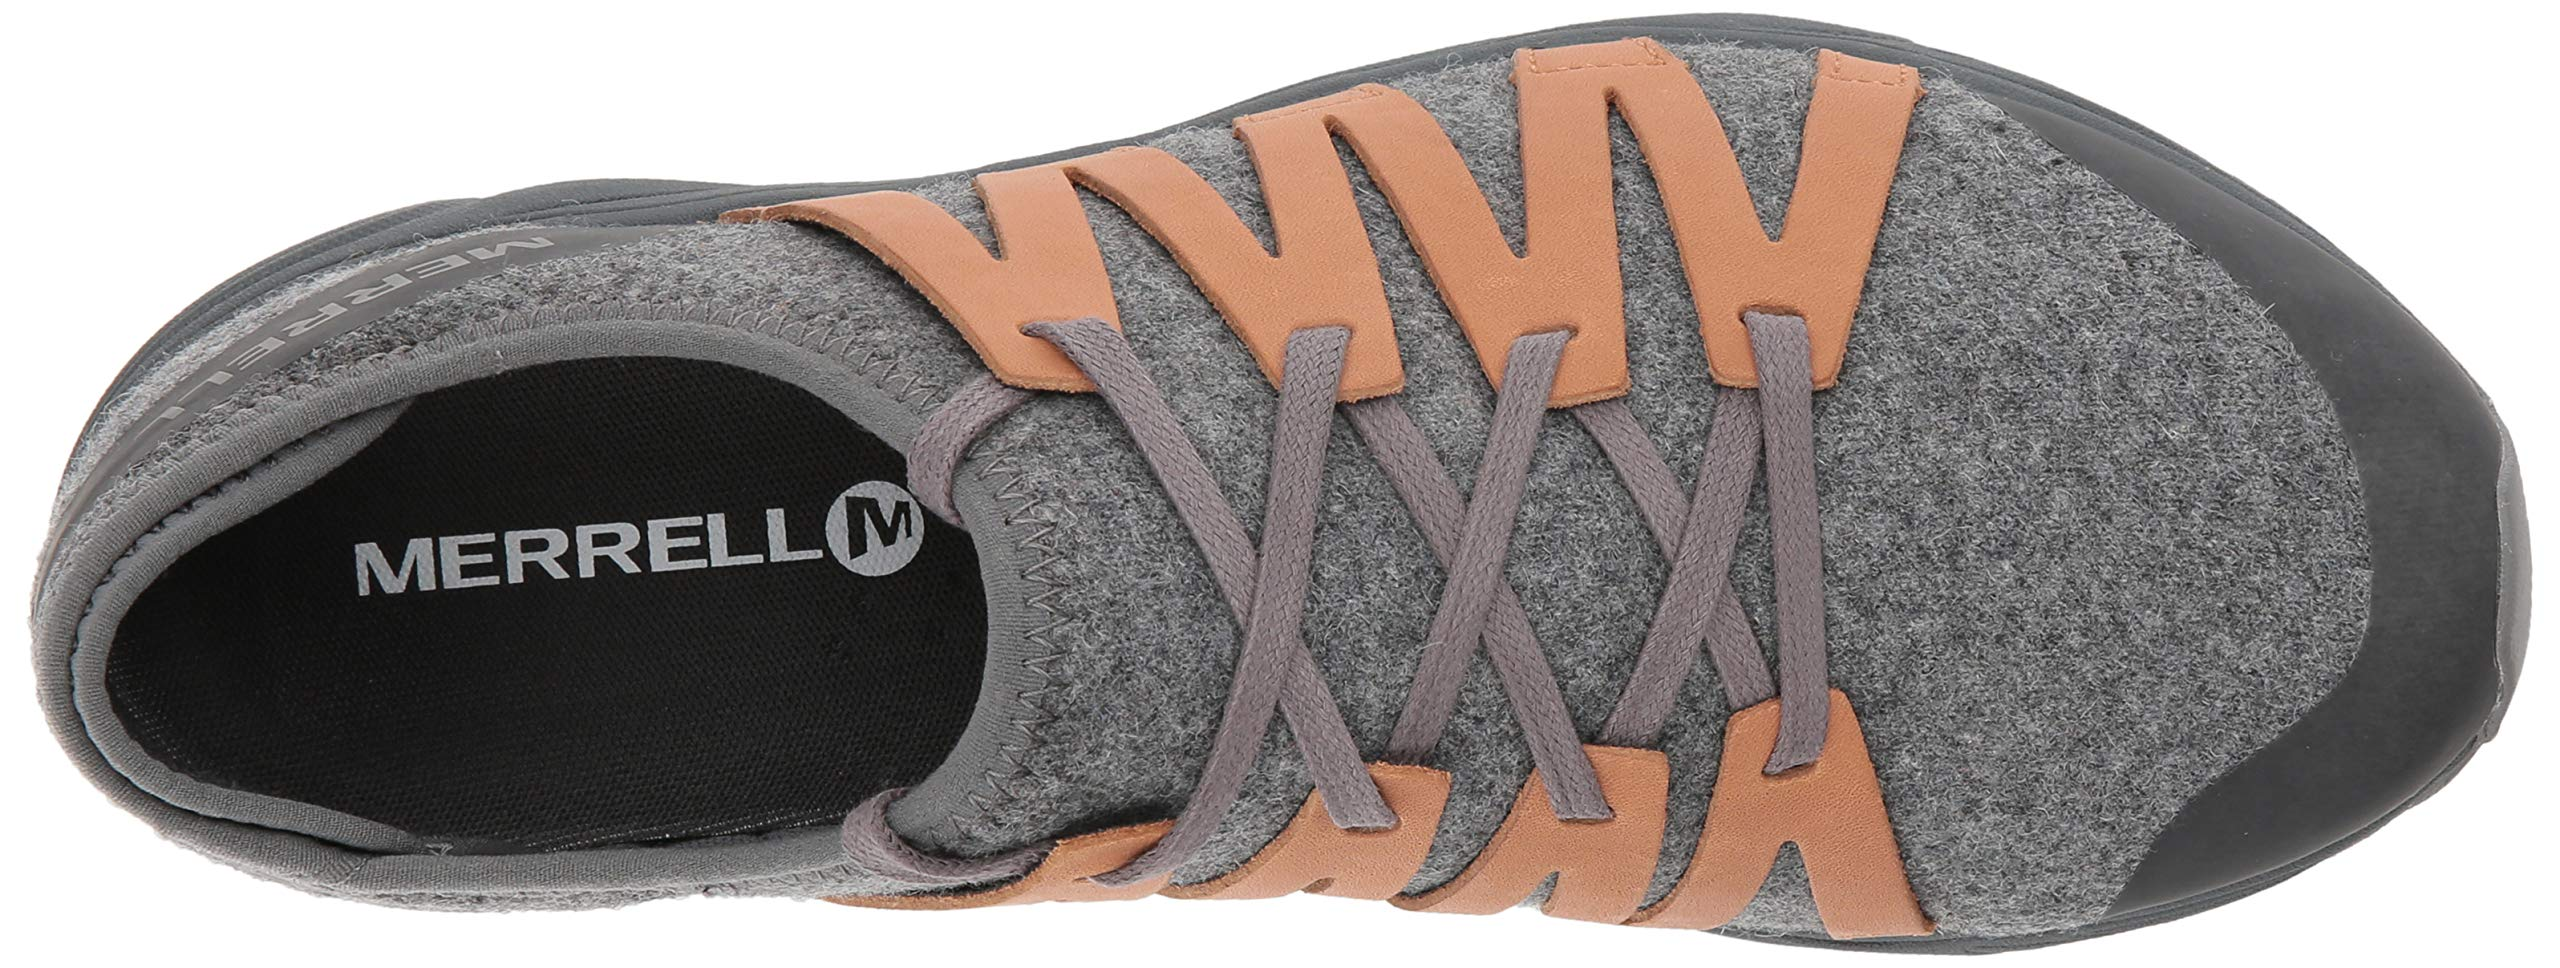 Merrell Women's Riveter Wool Sneaker Charcoal 11 M US by Merrell (Image #8)